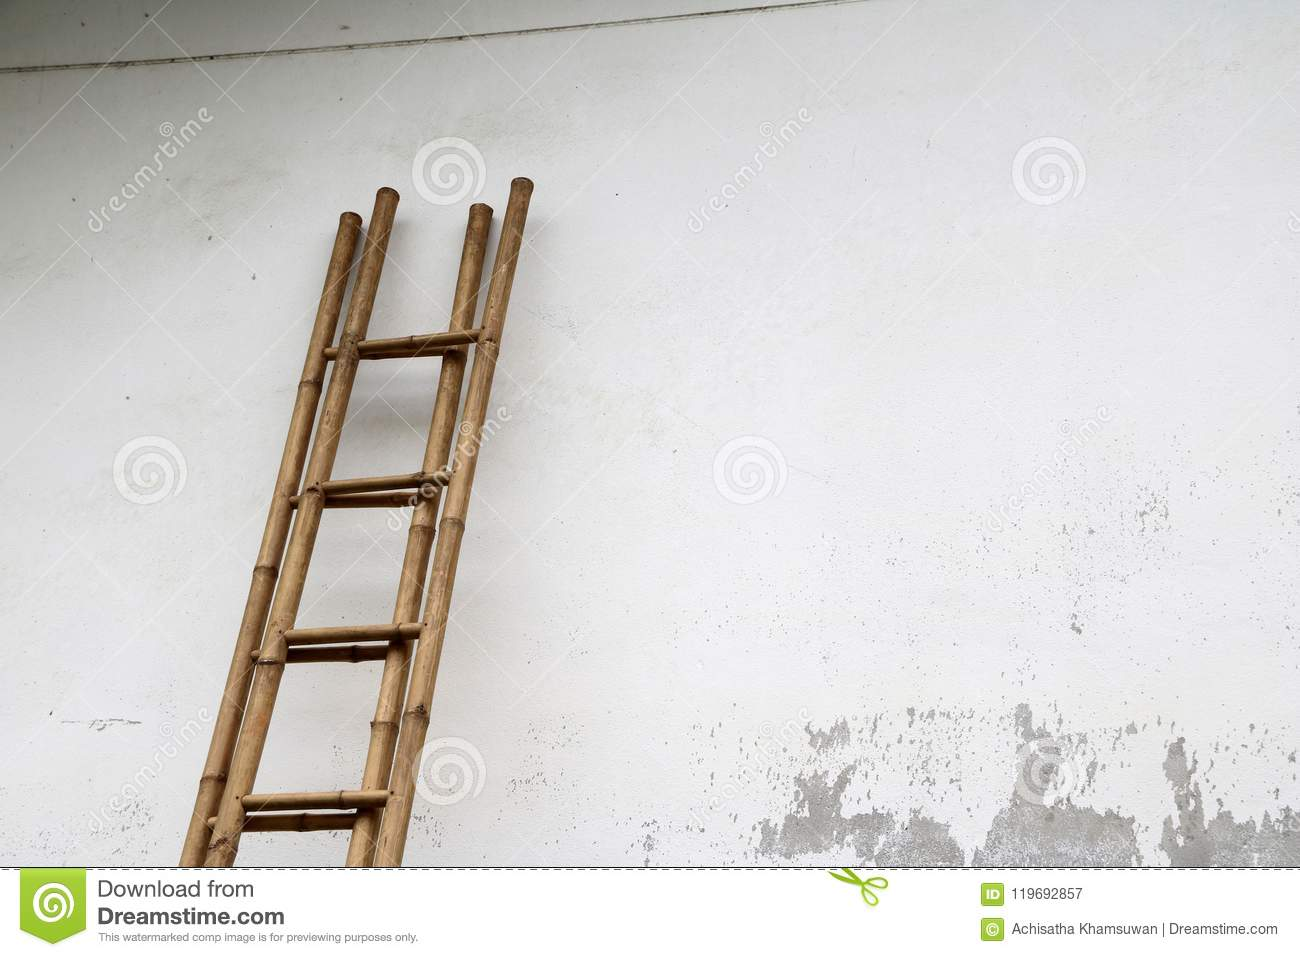 Bamboo Stairs Leaning Against The Wall.